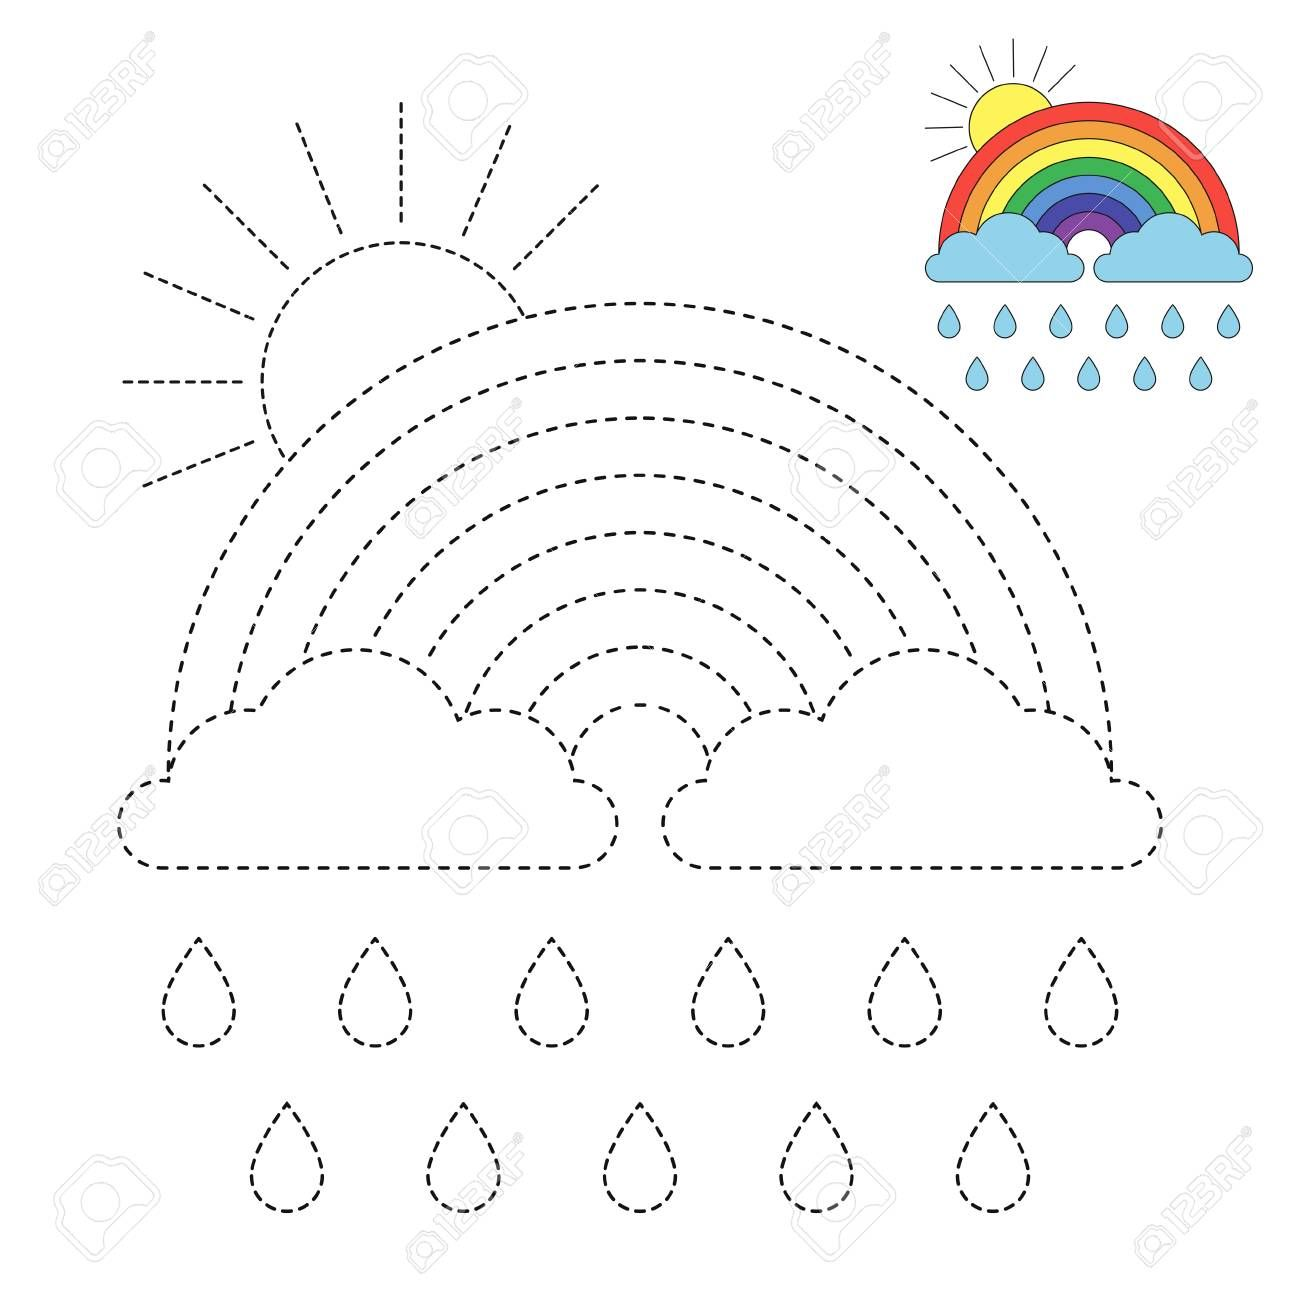 Vector Drawing Worksheet For Kids Simple Educational Game For Royalty Free Cliparts Vectors And Worksheets For Kids Rainbow Drawing Fun Worksheets For Kids - Download Easy Kindergarten Drawing Worksheets Pictures